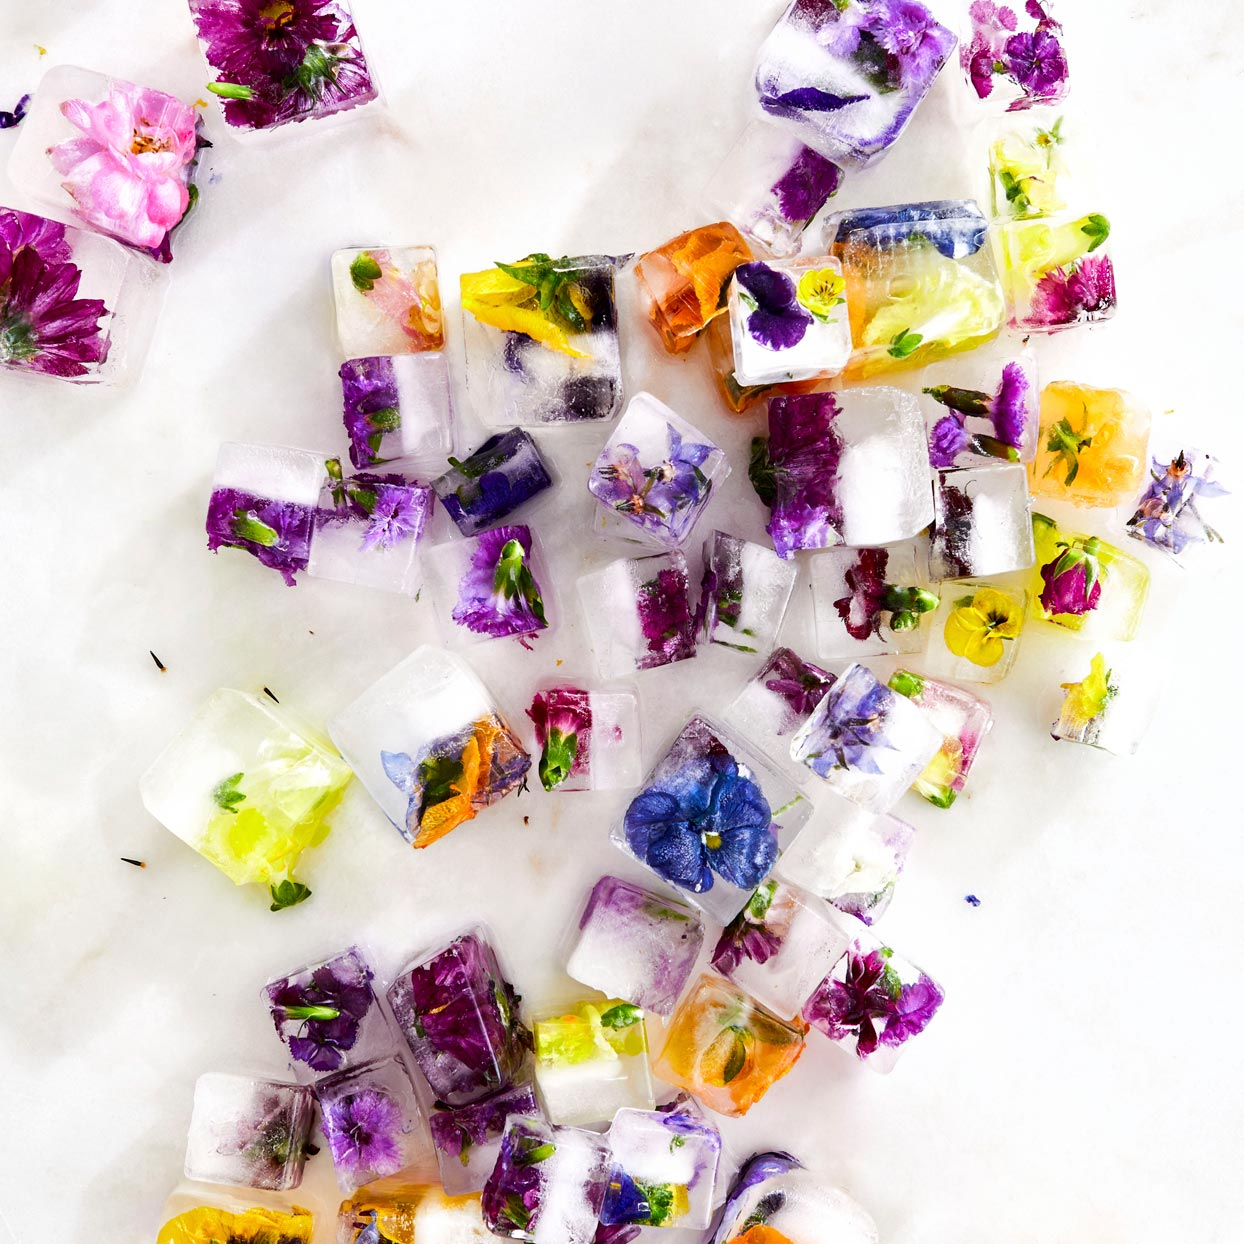 edible flowers in ice